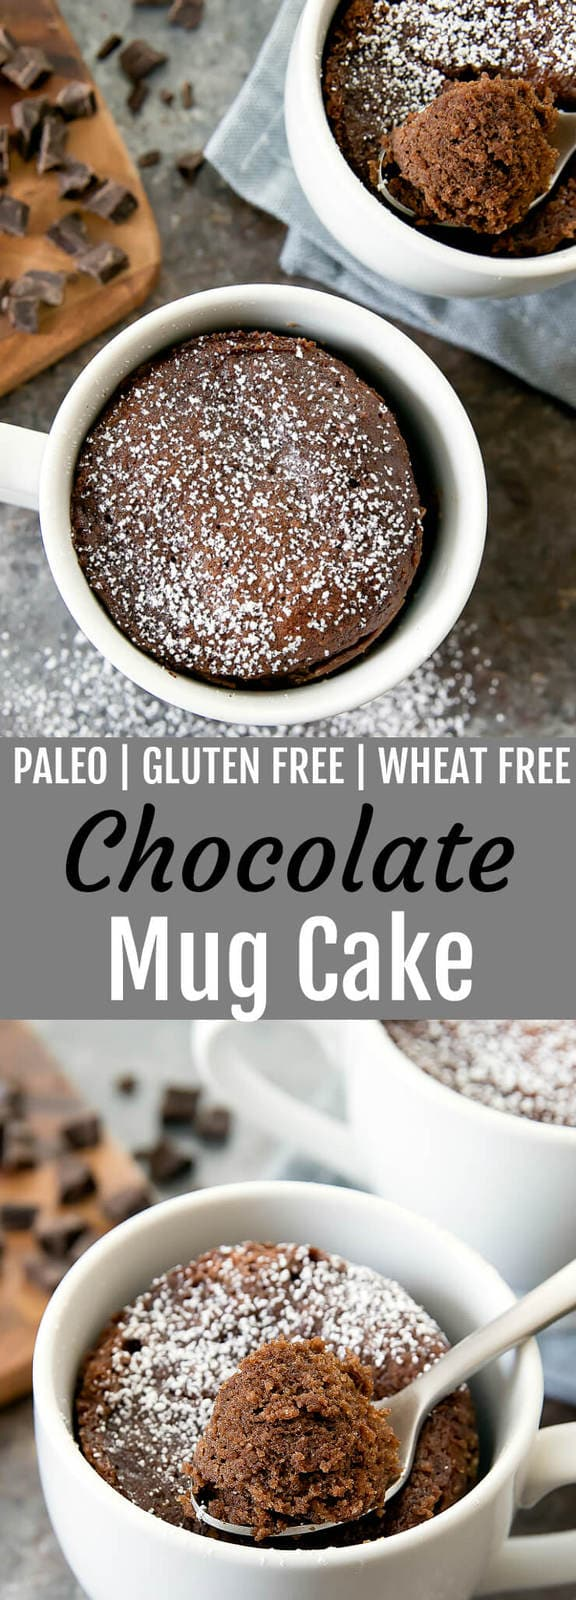 Paleo Gluten Free Chocolate Mug Cake. This cake is rich and decadent and cooks in the microwave in less than 2 minutes!